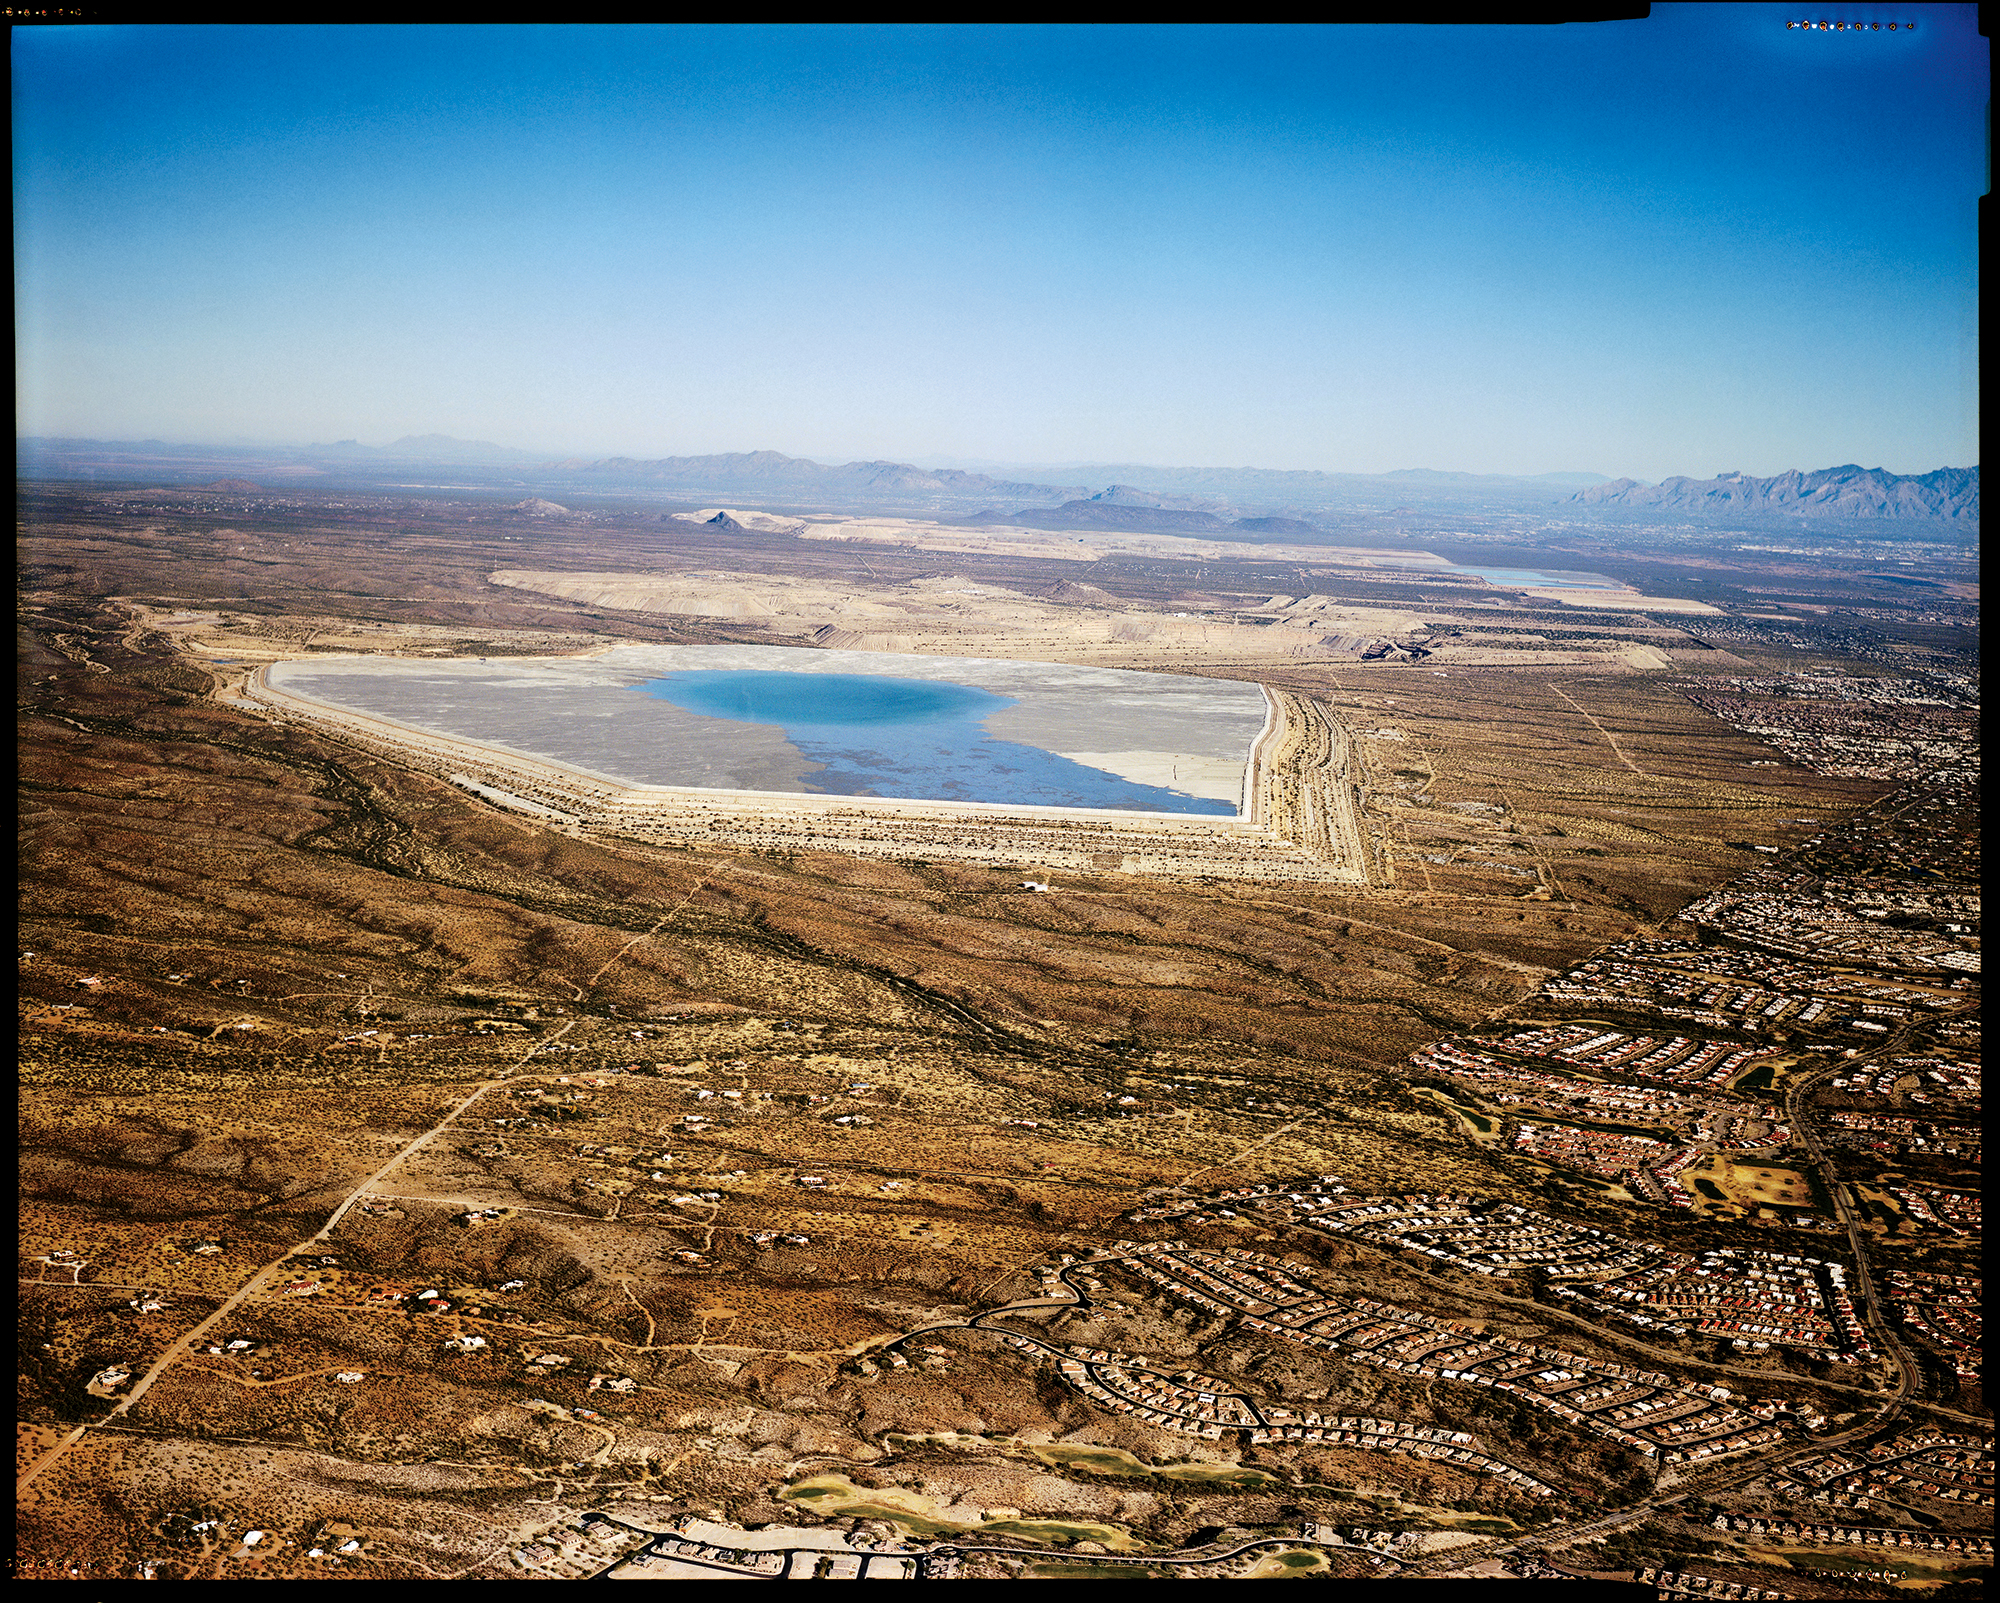 A tailings pond of waste materials left over after the copper-ore extraction process at the Sierrita Mine, near the Canoa Estates retirement community (center right). Copper mines, along with golf courses are significant contributors to water depletion in Arizona, which has been in a drought for over two decades.